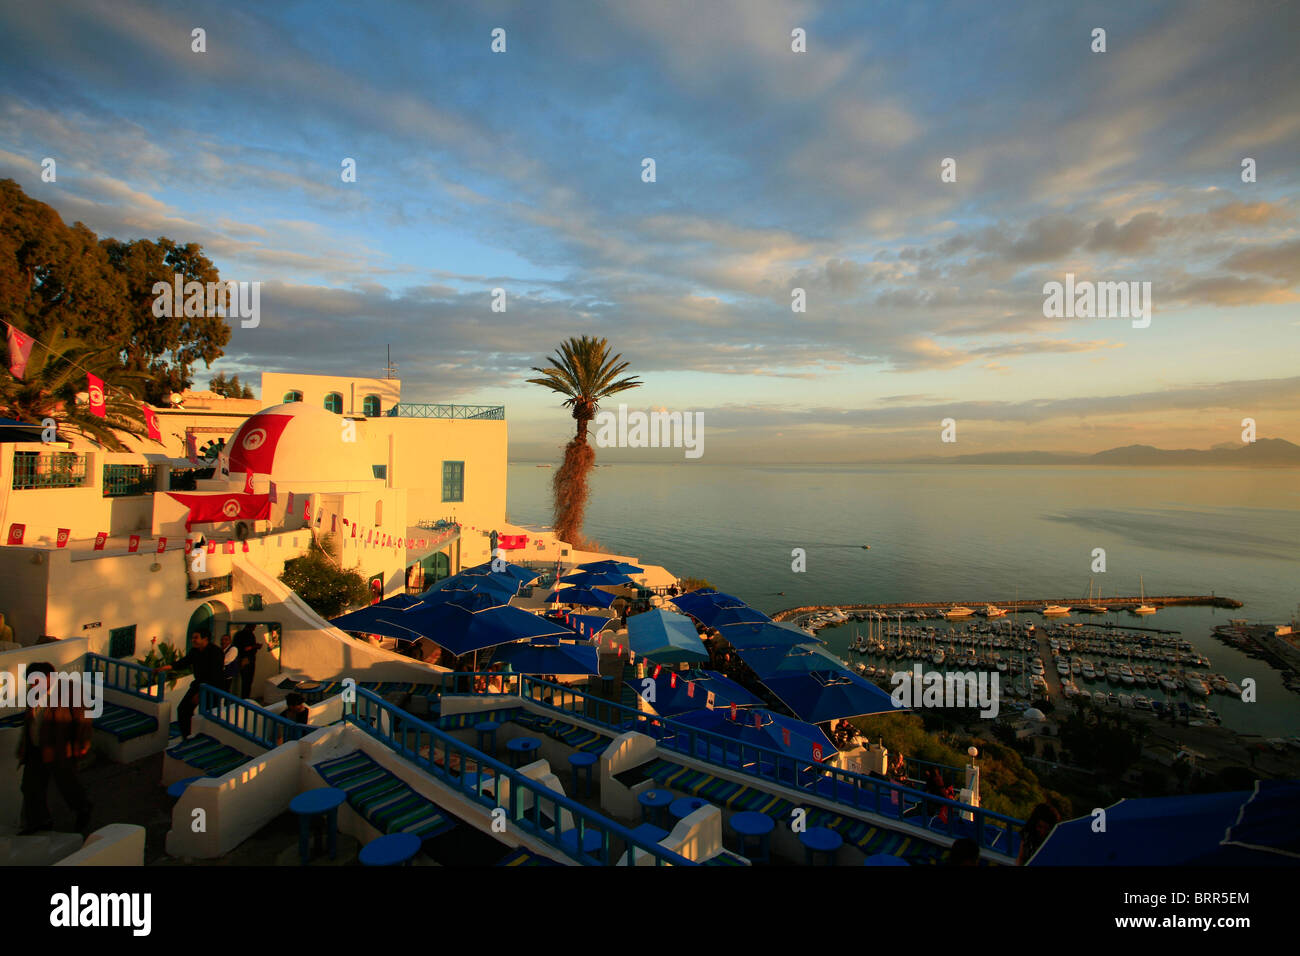 Sunset at a cafe in the upmarket suburb of Sidi Bou Said, a cliff top village popular with tourists near the capital - Stock Image